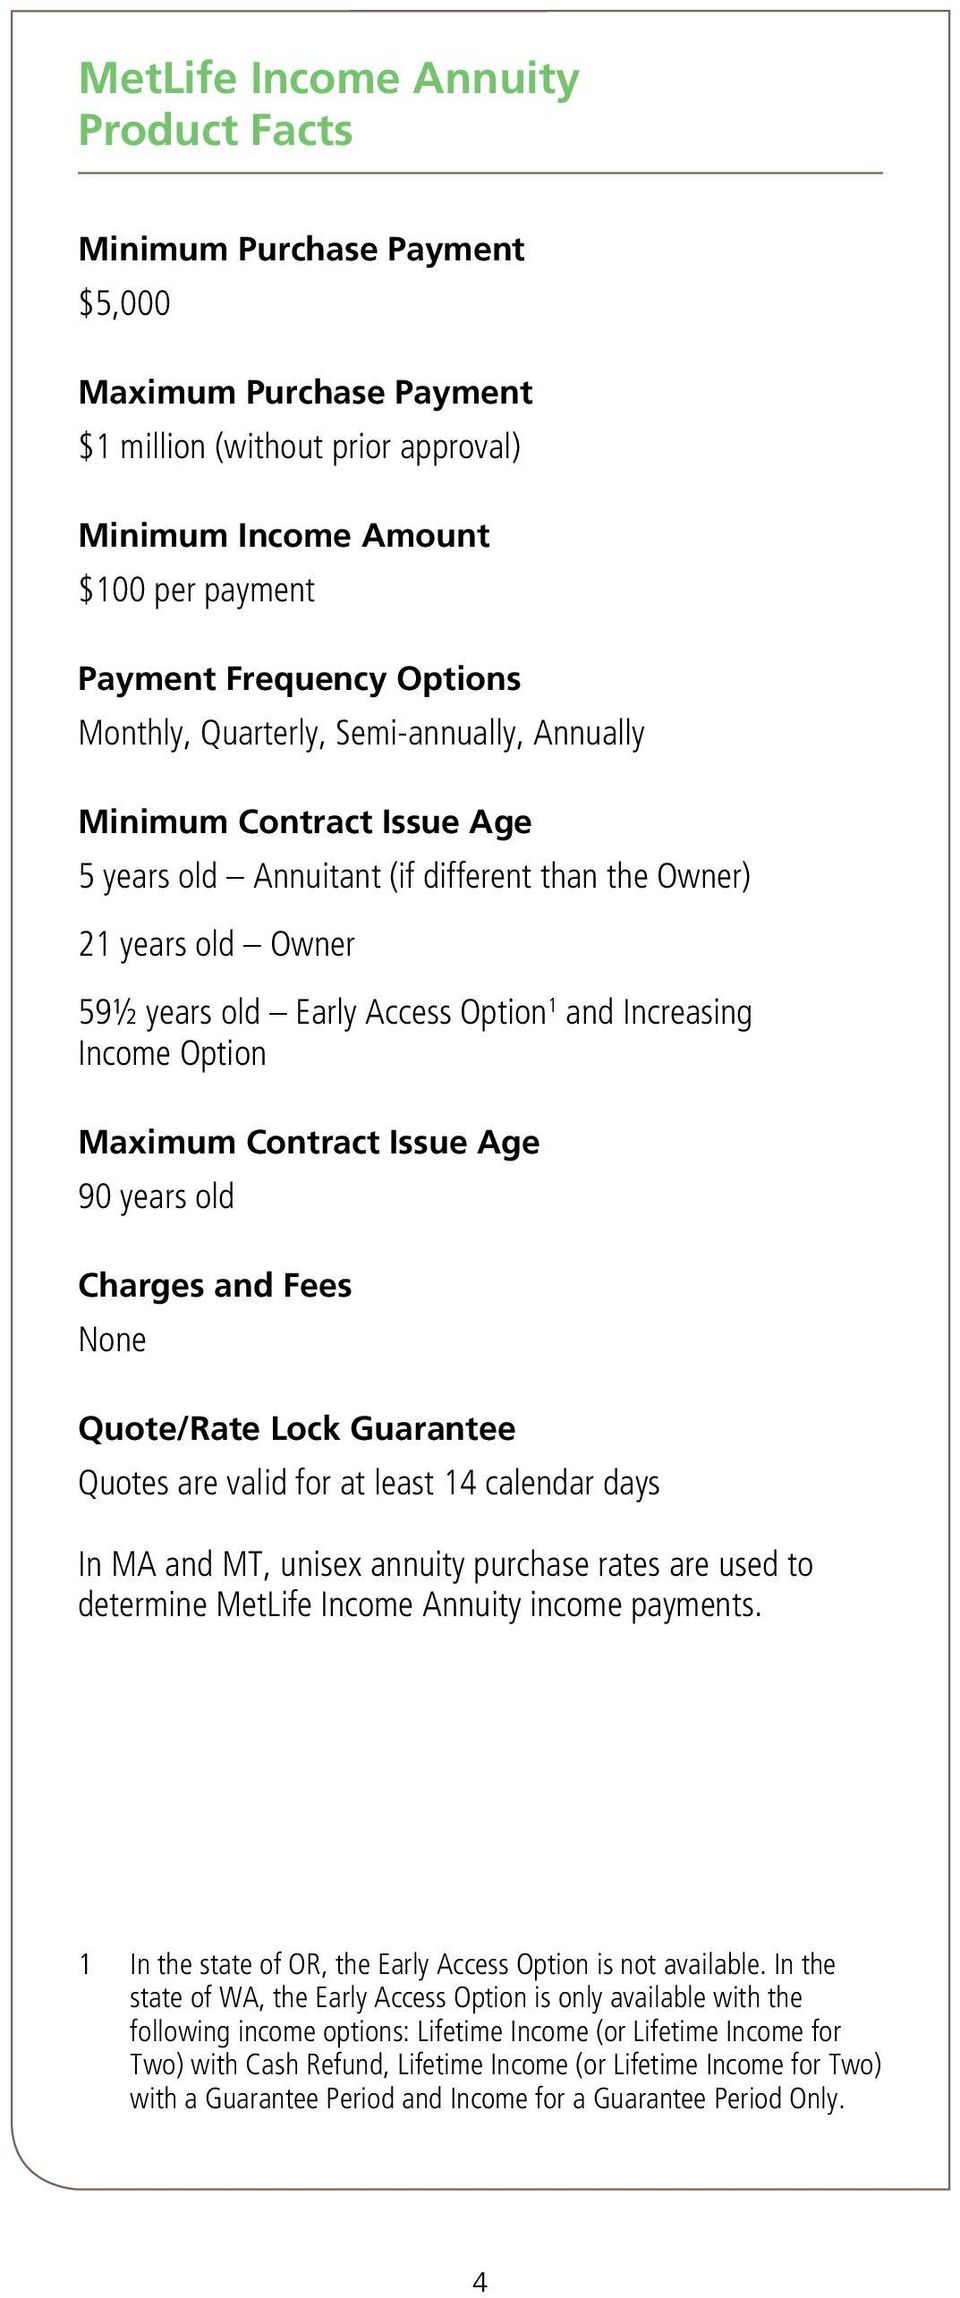 Option Maximum Contract Issue Age 90 years old Charges and Fees None Quote/Rate Lock Guarantee Quotes are valid for at least 14 calendar days In MA and MT, unisex annuity purchase rates are used to